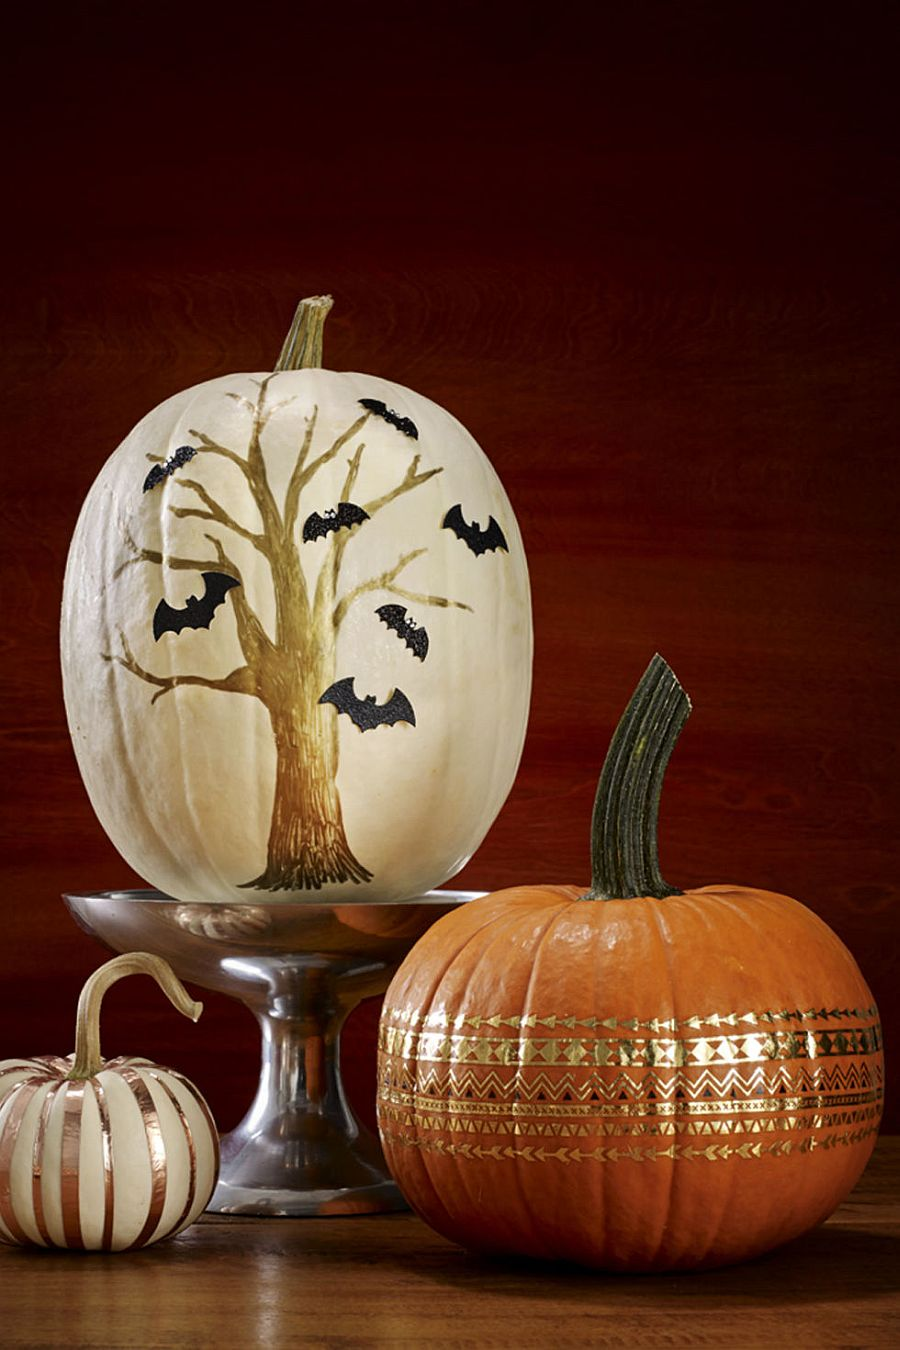 25 awesome painted pumpkin ideas for halloween and beyond White pumpkin carving ideas